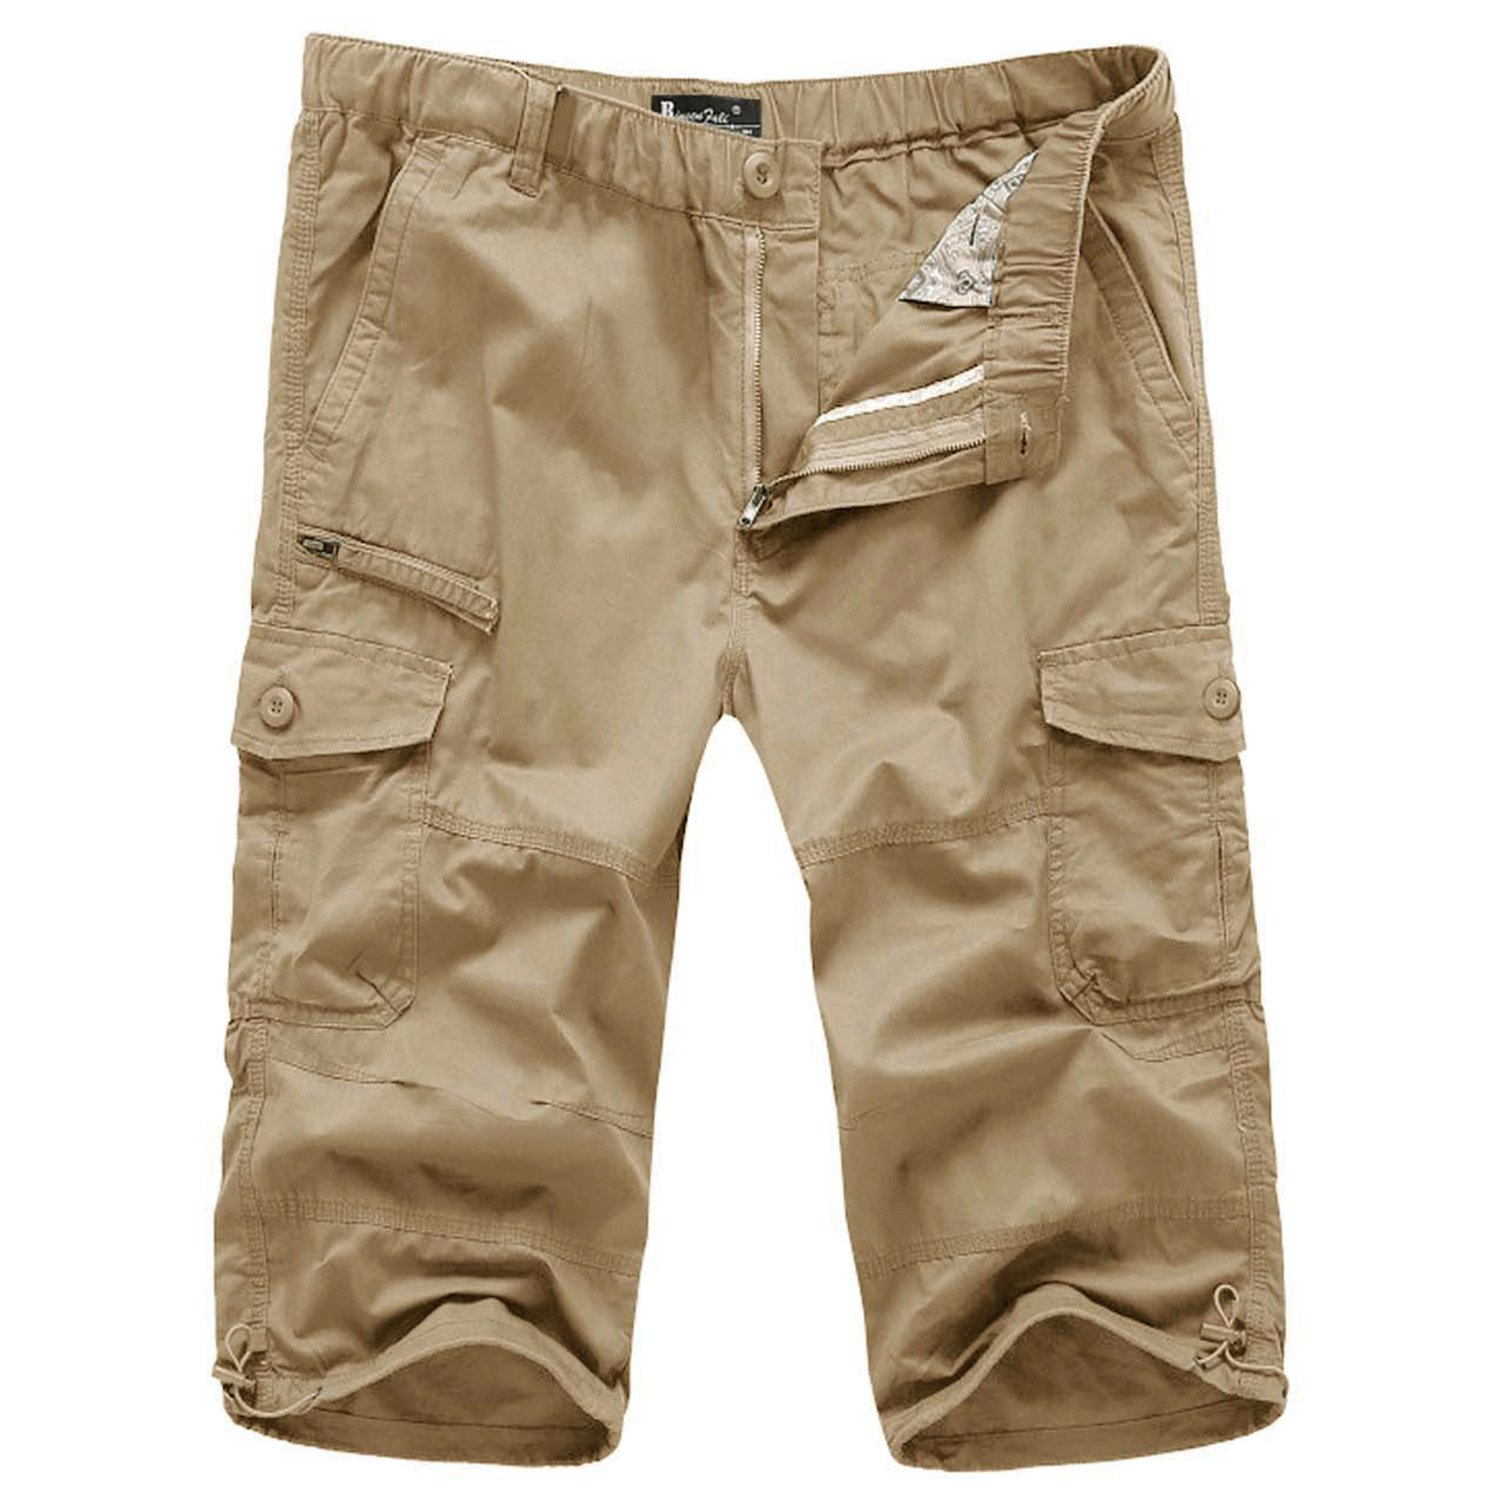 FASKUNOIE Men's Casual Shorts Relaxed Fit Loose 3/4 Cargo Shorts Autumn Work Business Below Knee Short Pants Pocket Khaki by FASKUNOIE (Image #6)